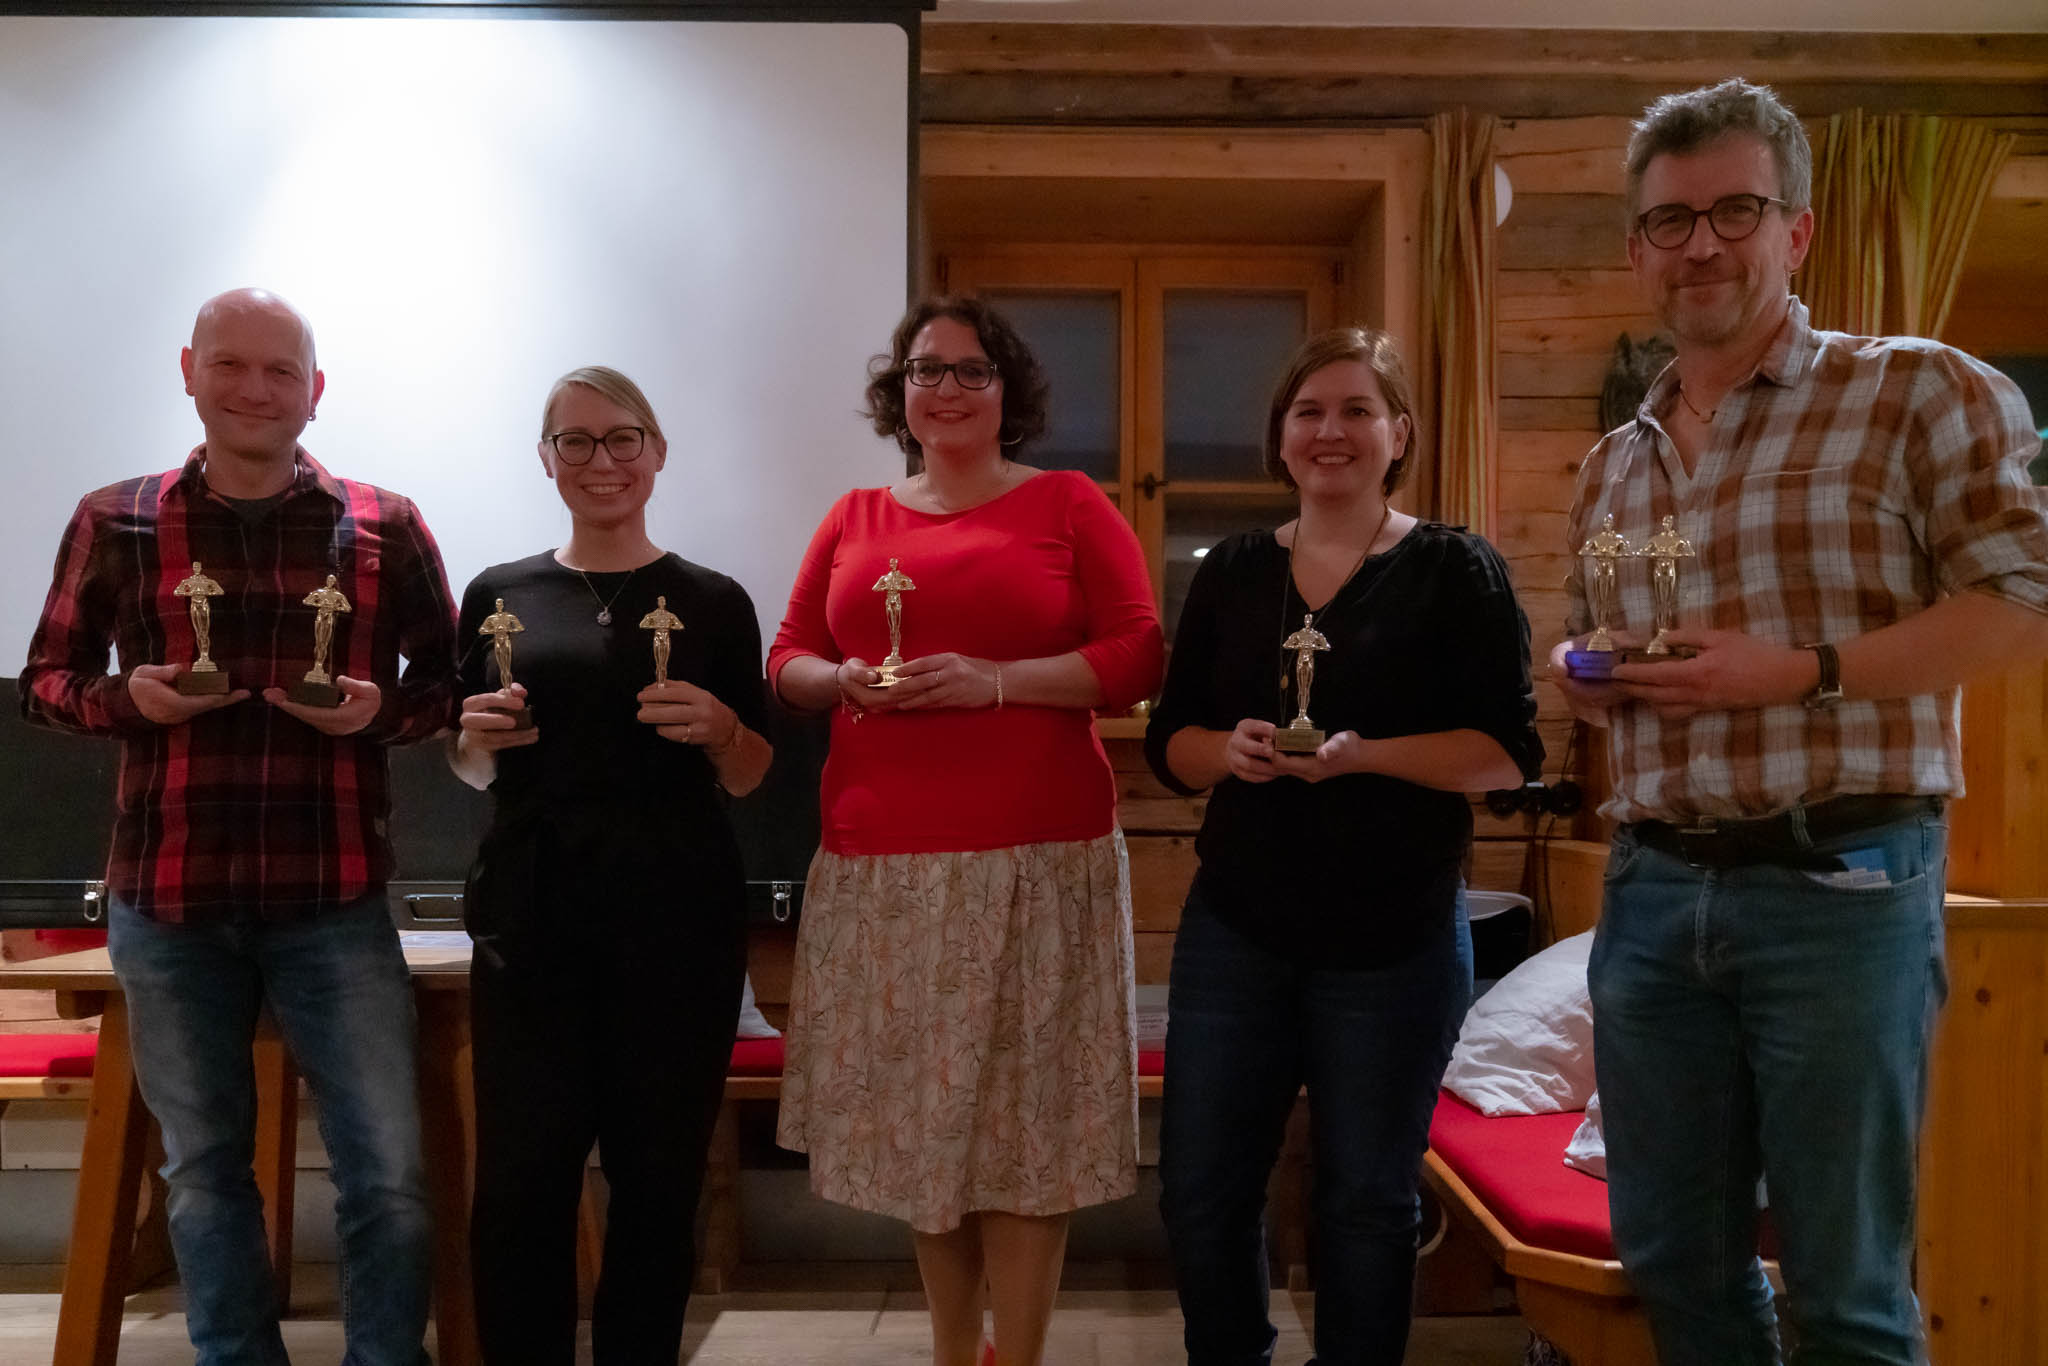 And the Oscars goes to... (v.l.n.r.) Tom Hirschmann, Birgit Rilk, Sandra Ilmberger, Birgit Kindsmüller und Peter Schreyer - (c) Andy Ilmberger